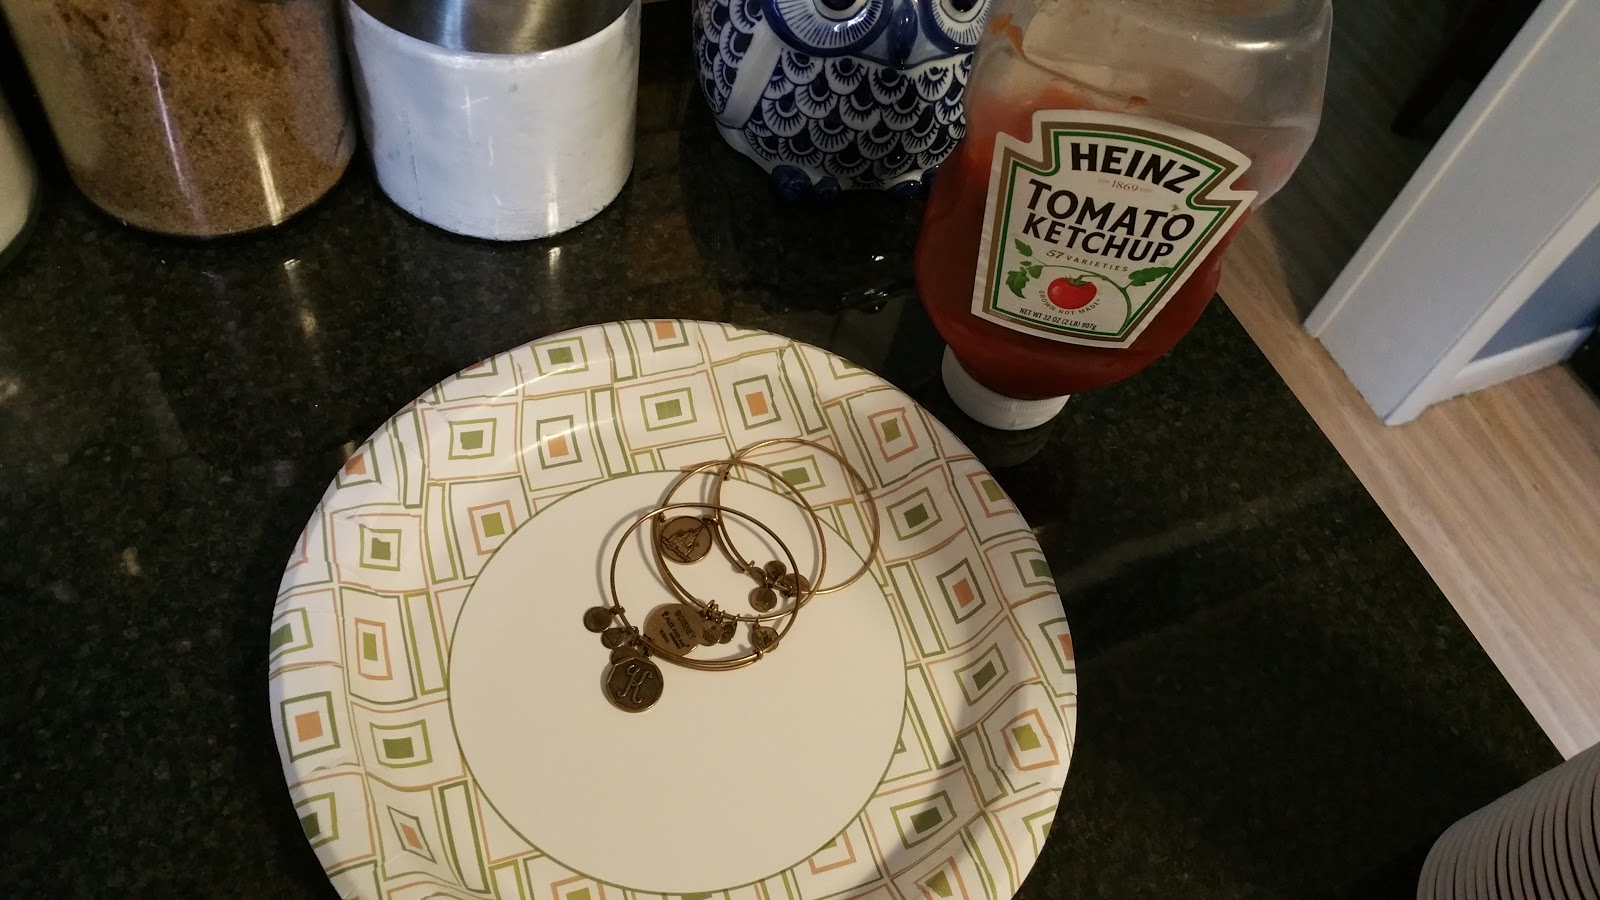 Here Is All You Need A Paper Plate Ketchup And Your Bracelets